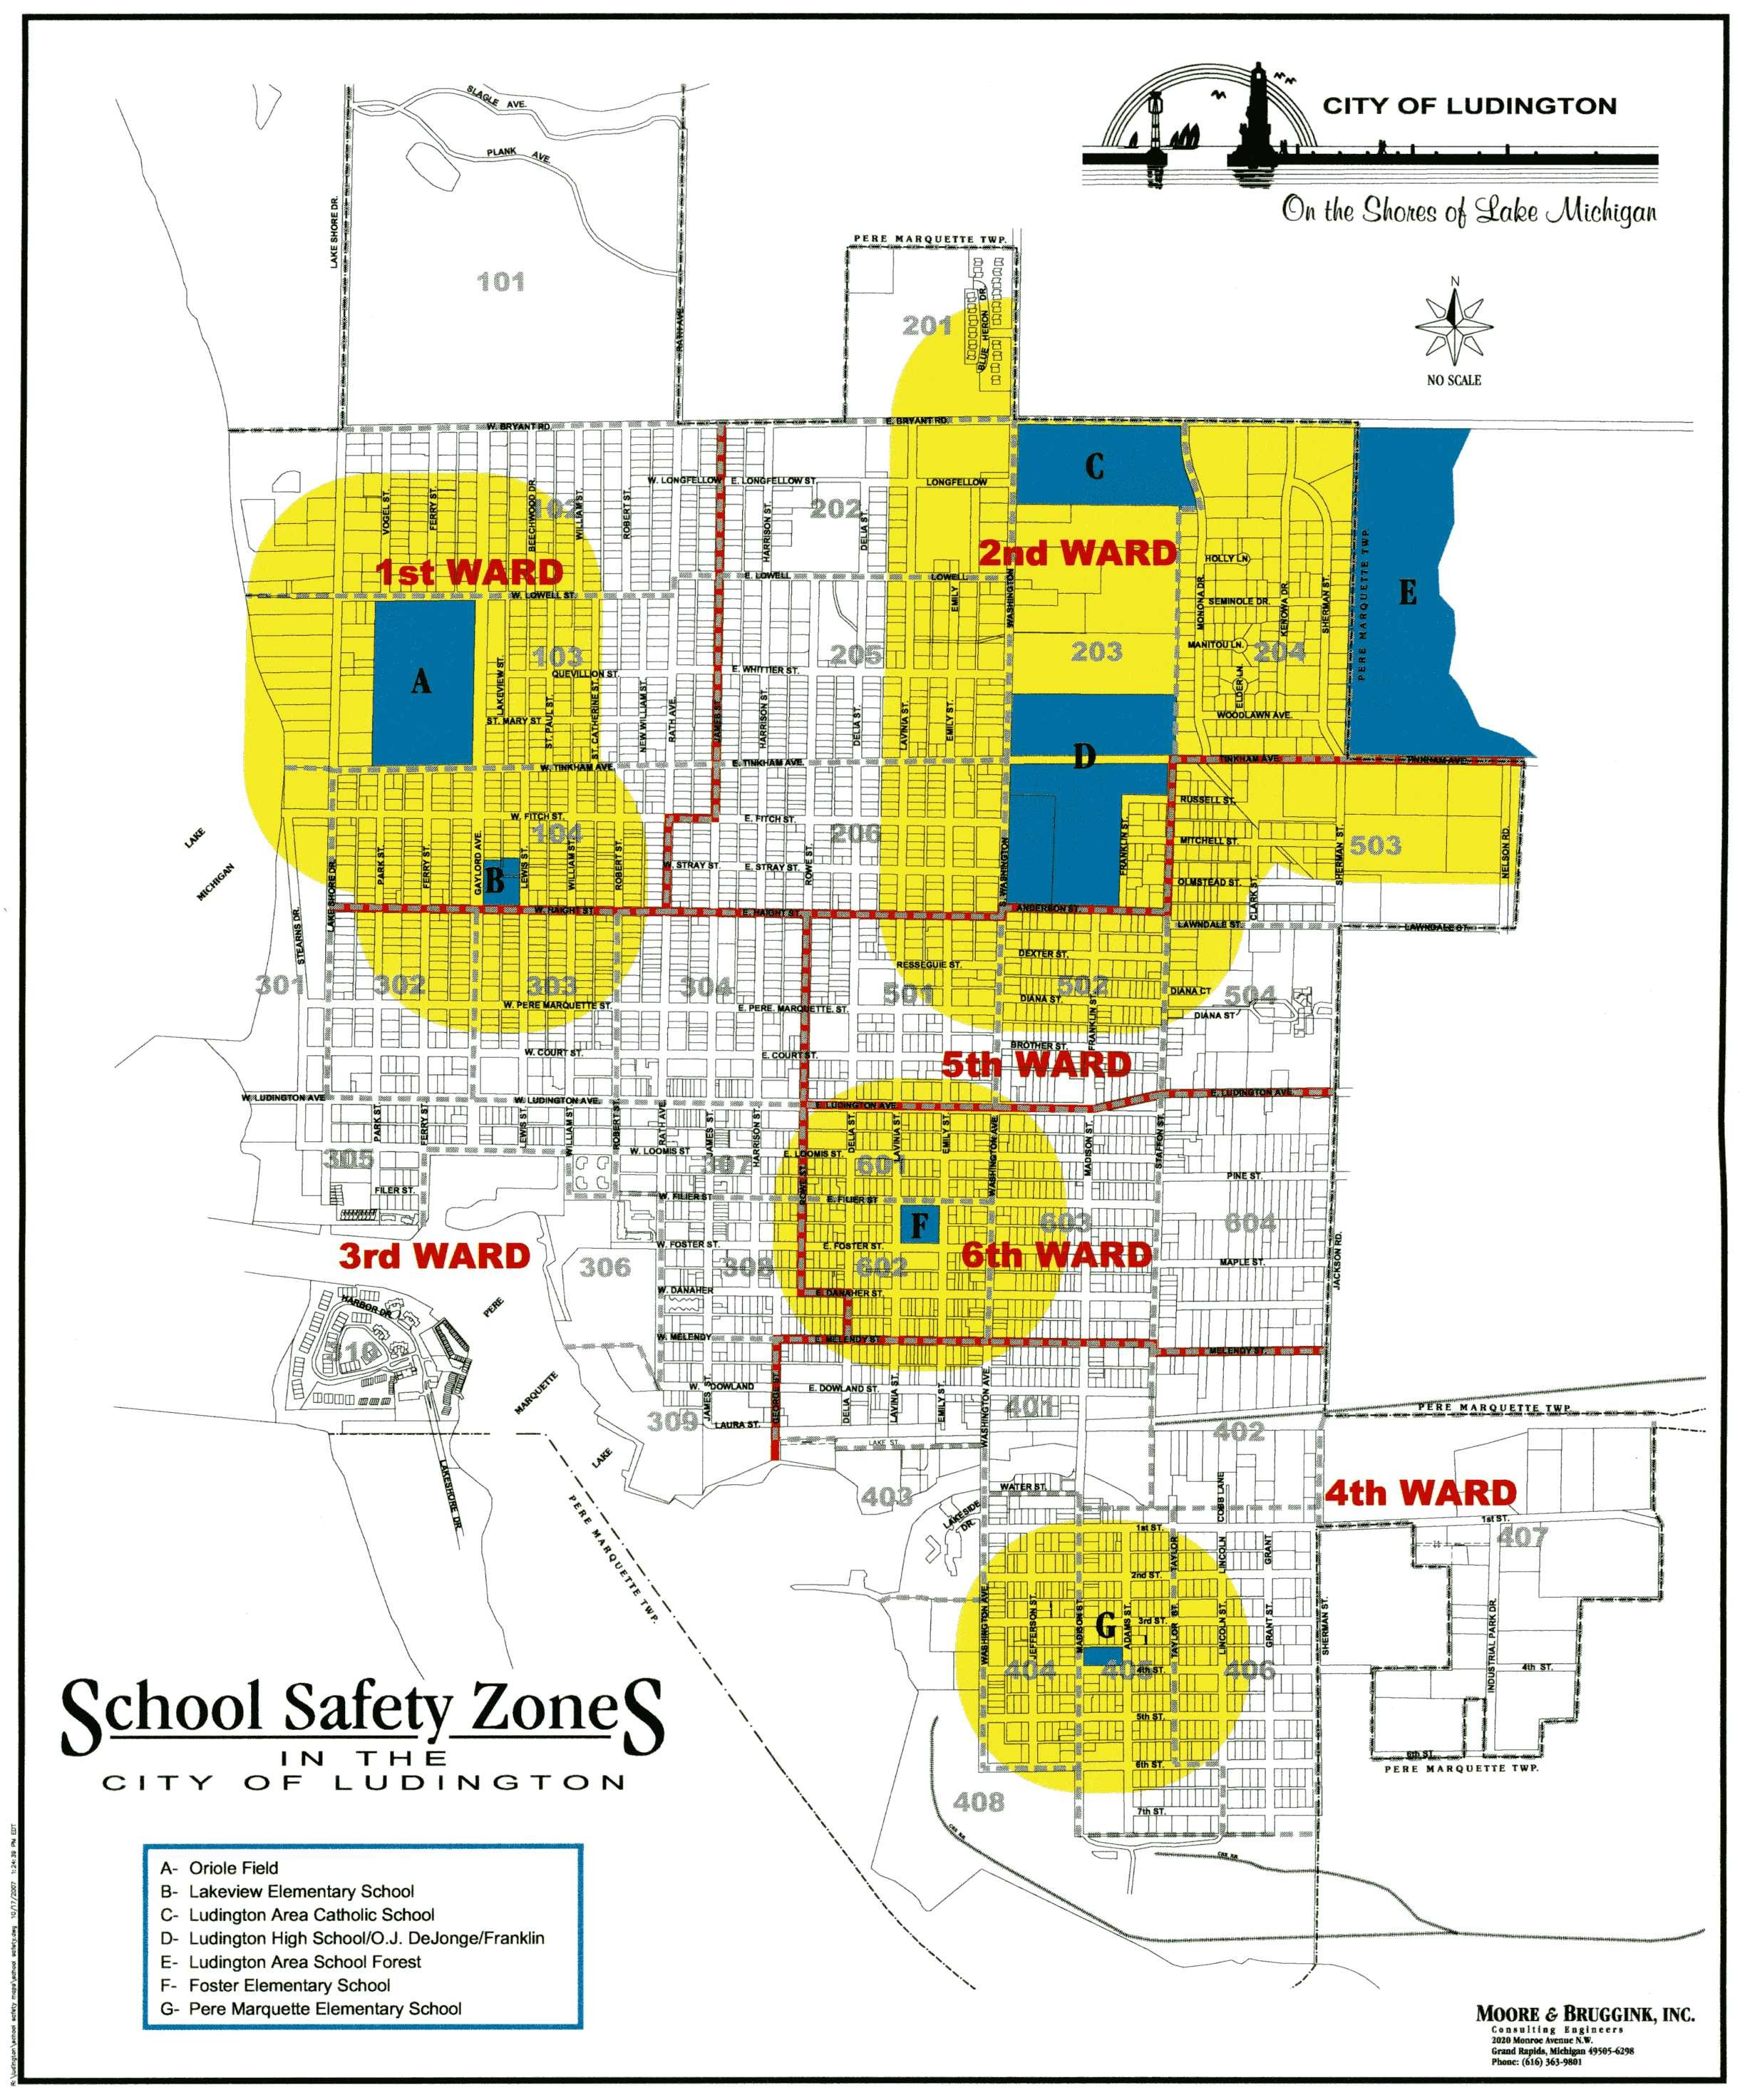 School Safety Zone Map Opens in new window